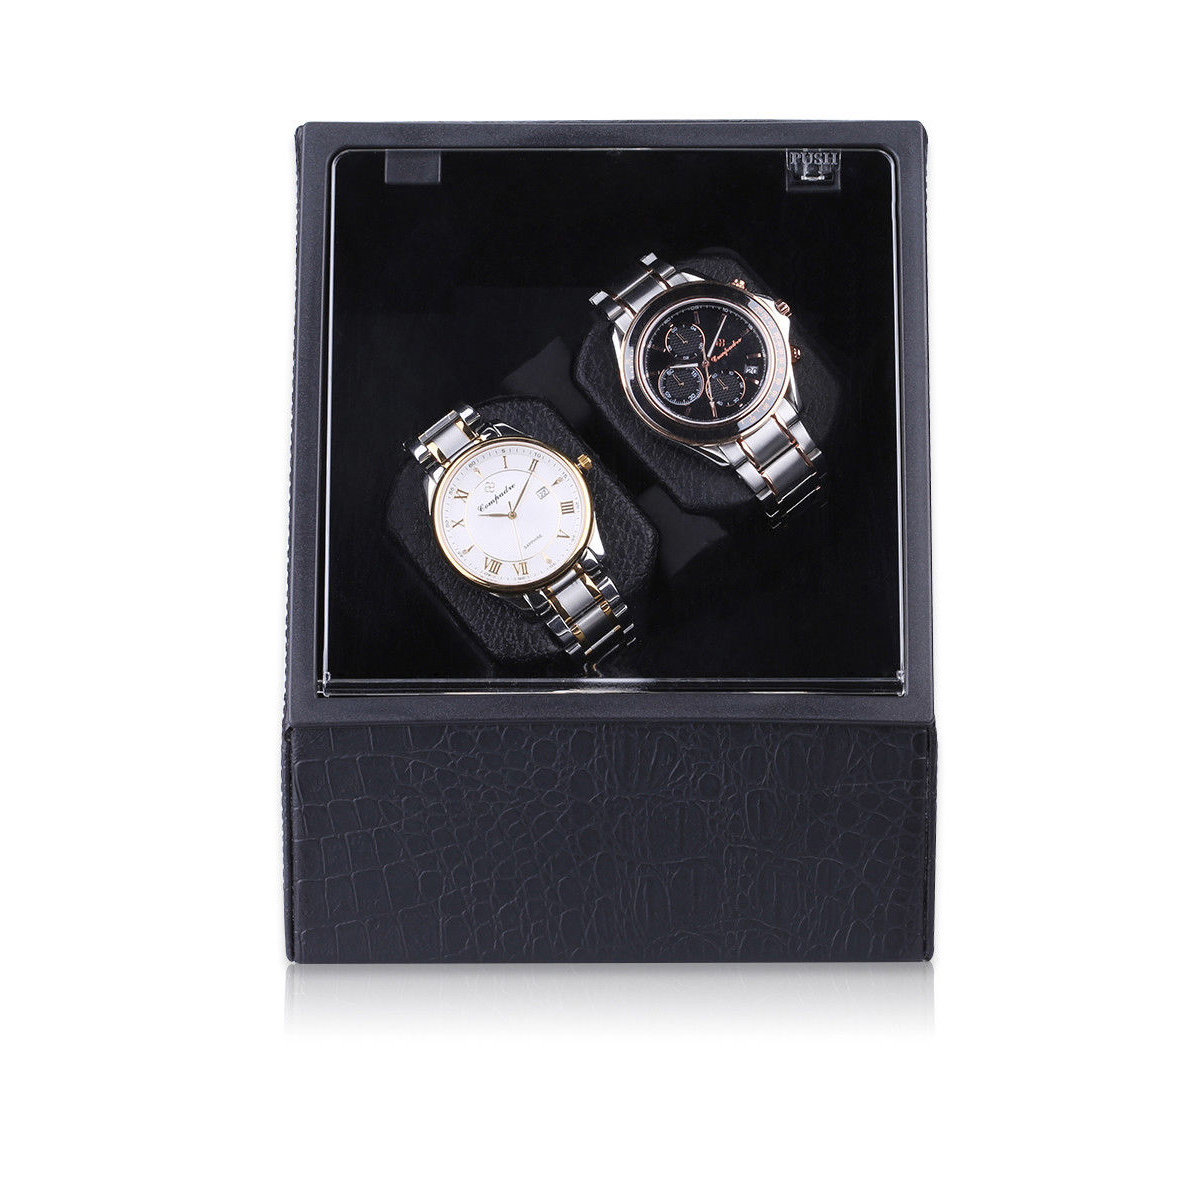 Automatic Watch Winder Carbon Fiber Leather Display Case Power Watch Tool with Quiet Motor Storage